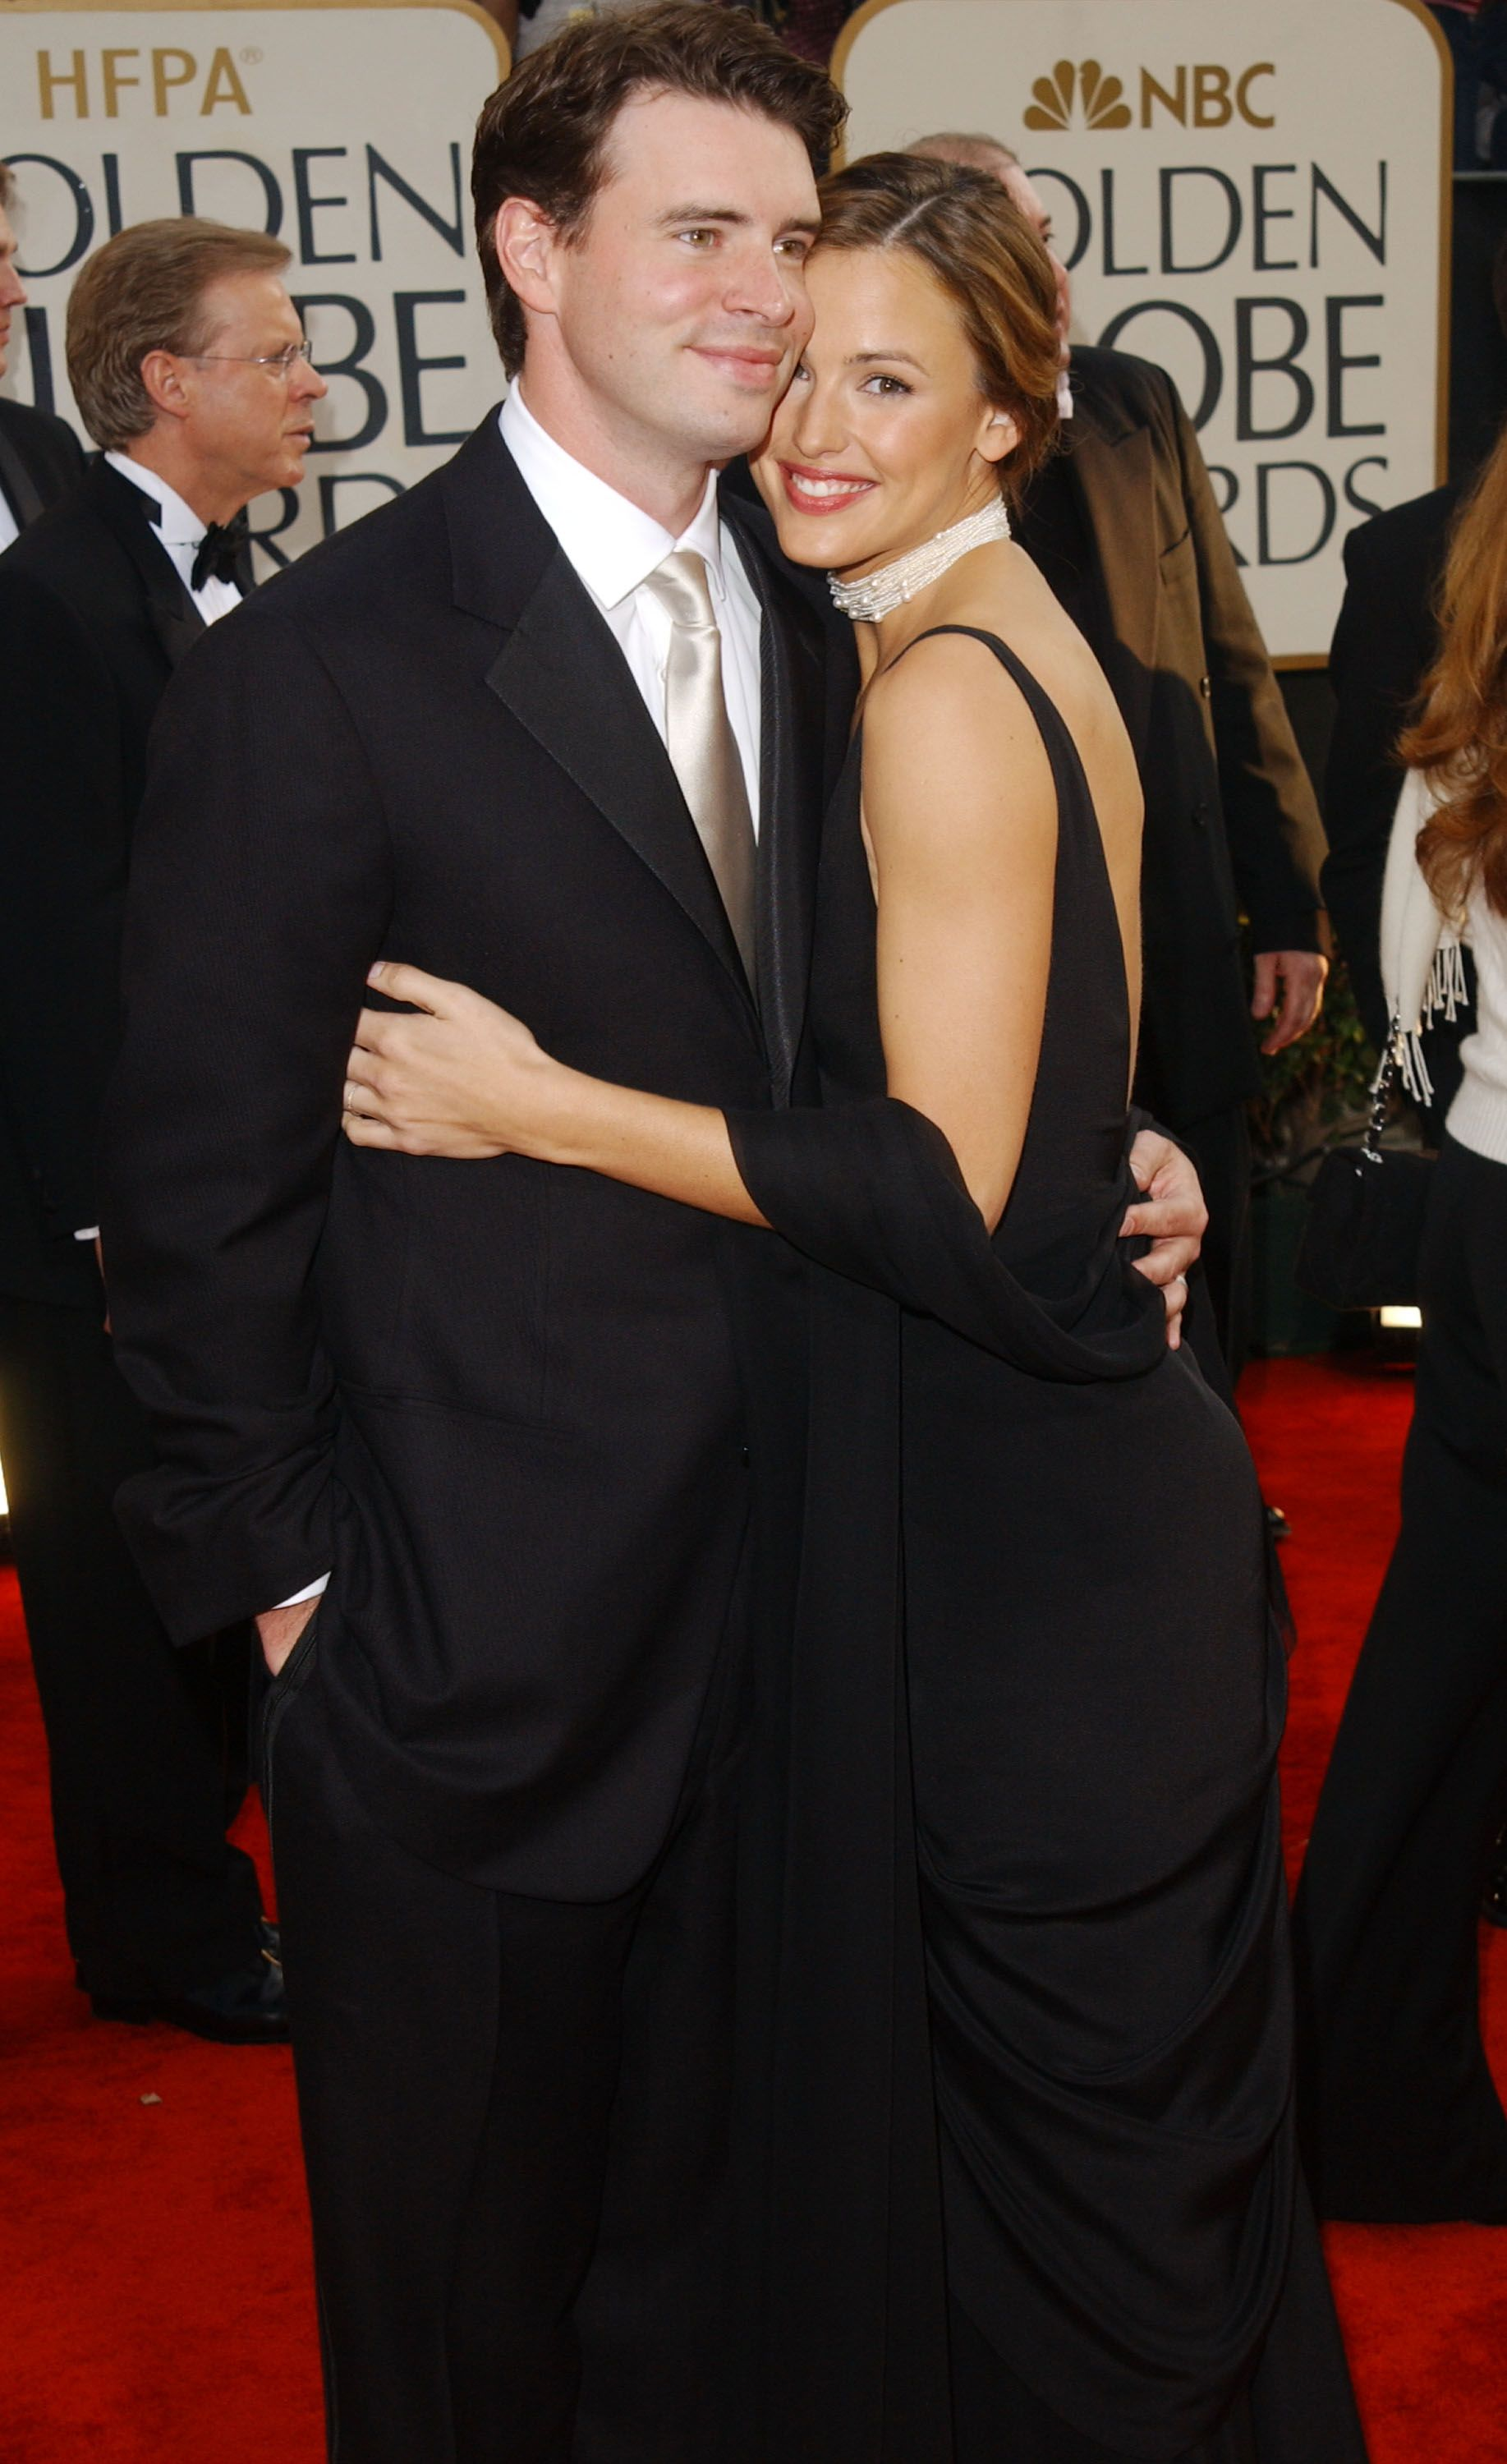 Scott Foley and Jennifer Garner at the 60th Annual Golden Globe Awards on January 19, 2003   Photo: Getty Images